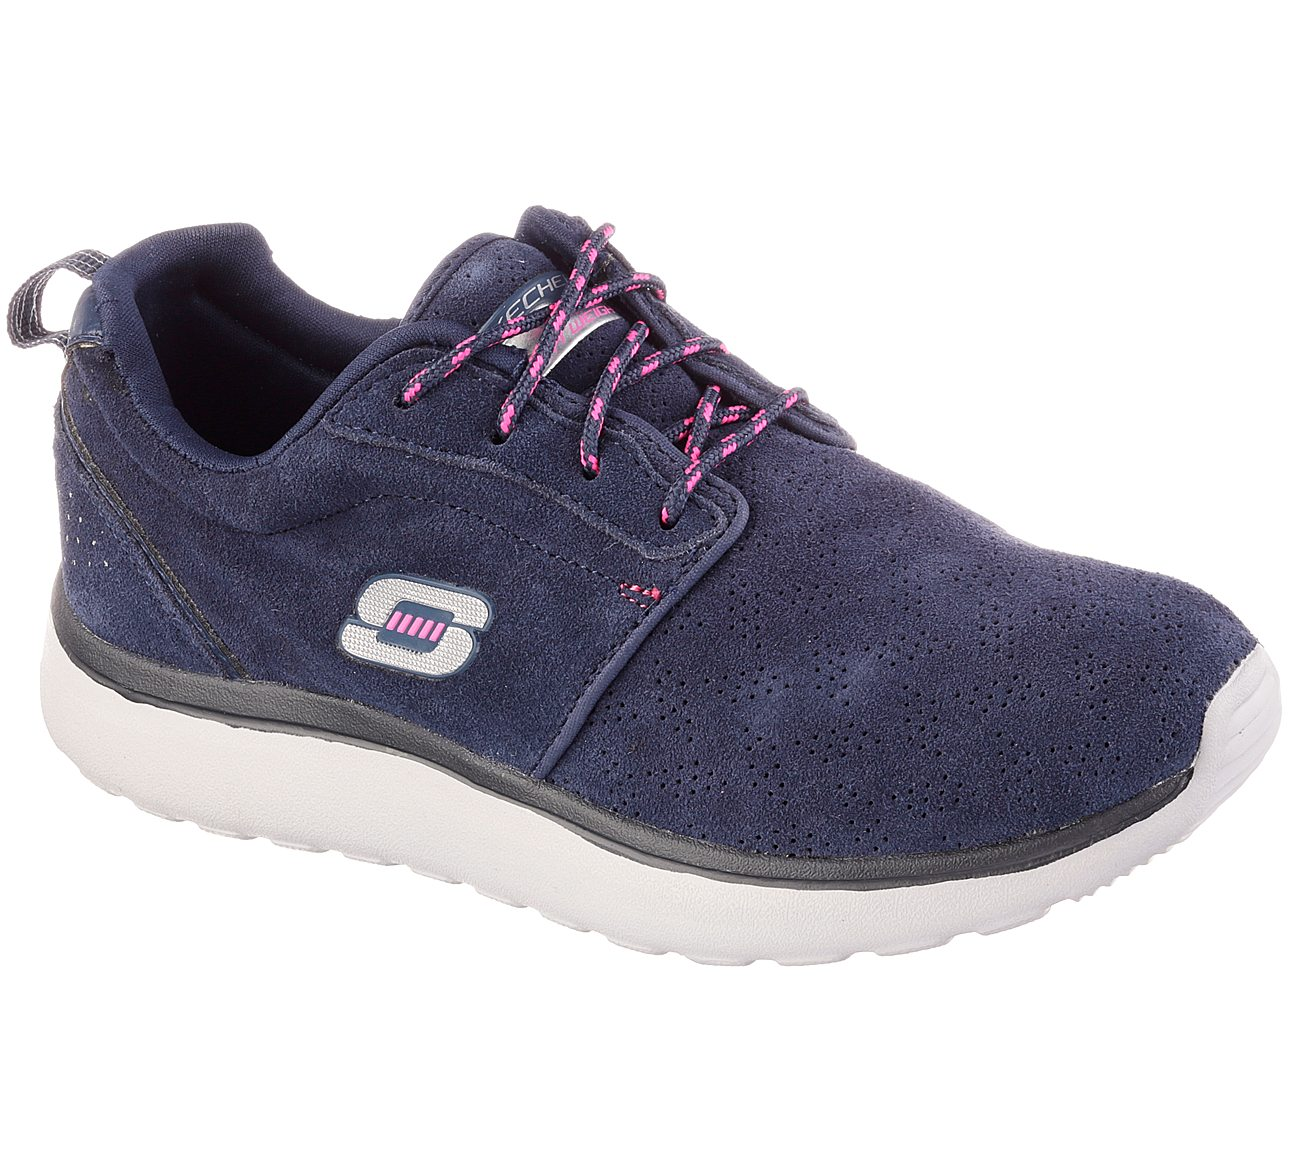 Buy SKECHERS Counterpart - Everything